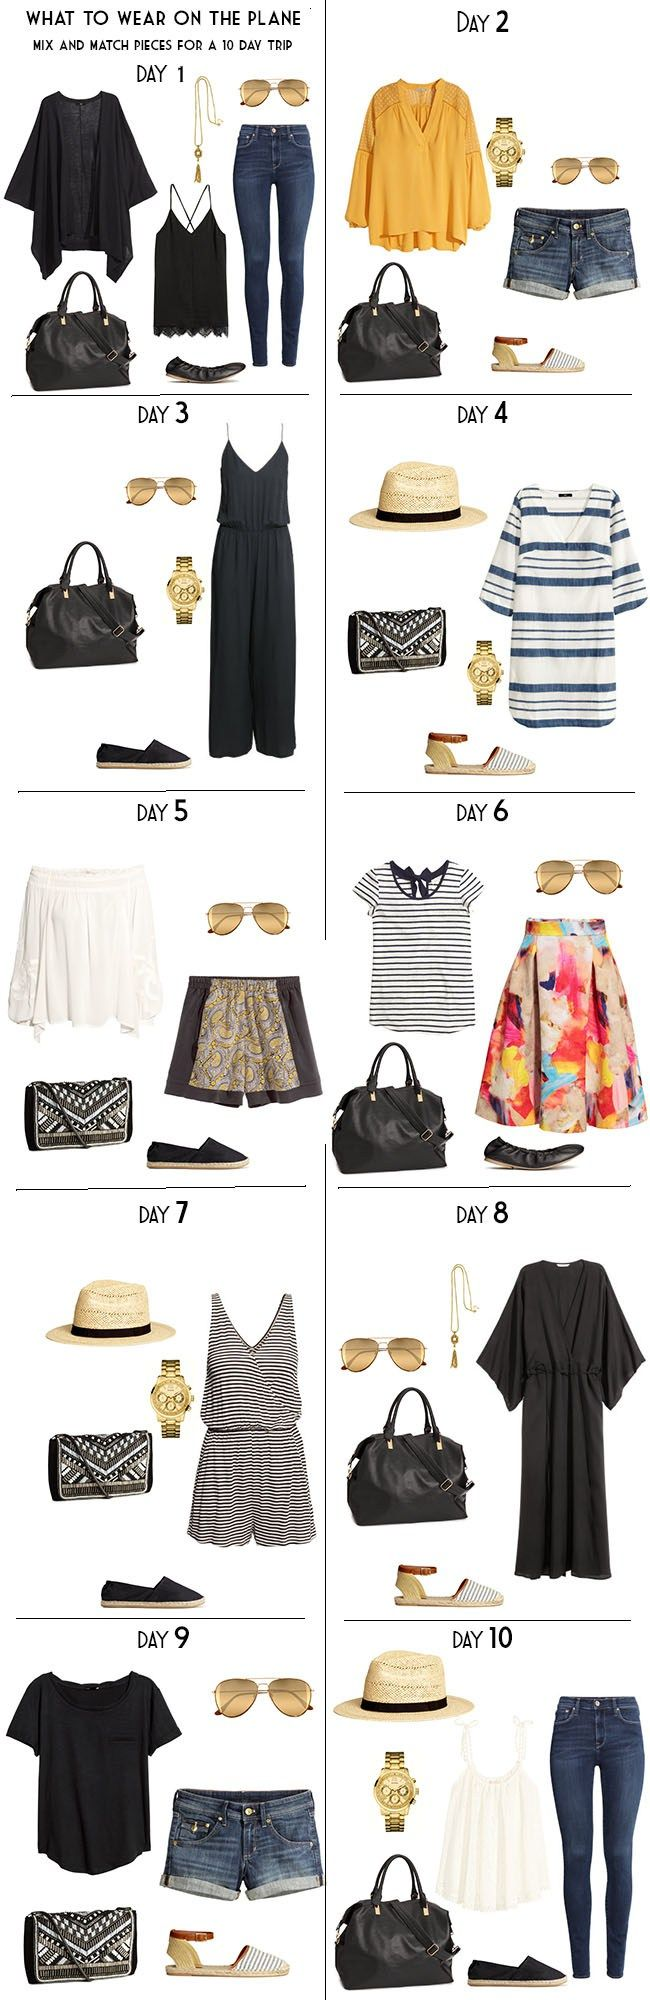 Best 25+ Europe travel outfits ideas on Pinterest | Travel packing ...